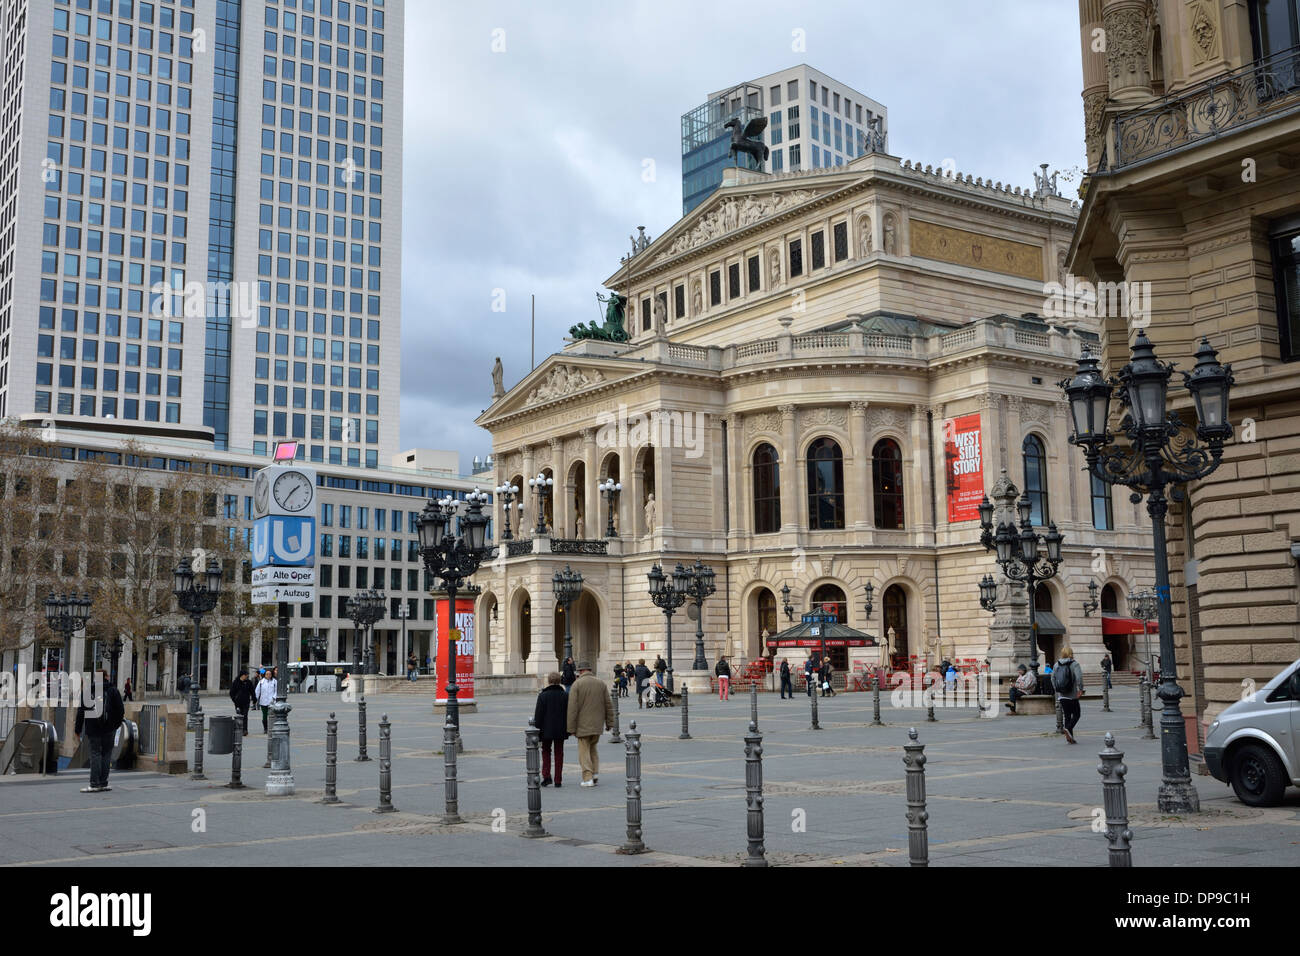 Tourists at the old opera house in Frankfurt, Germany - Stock Image